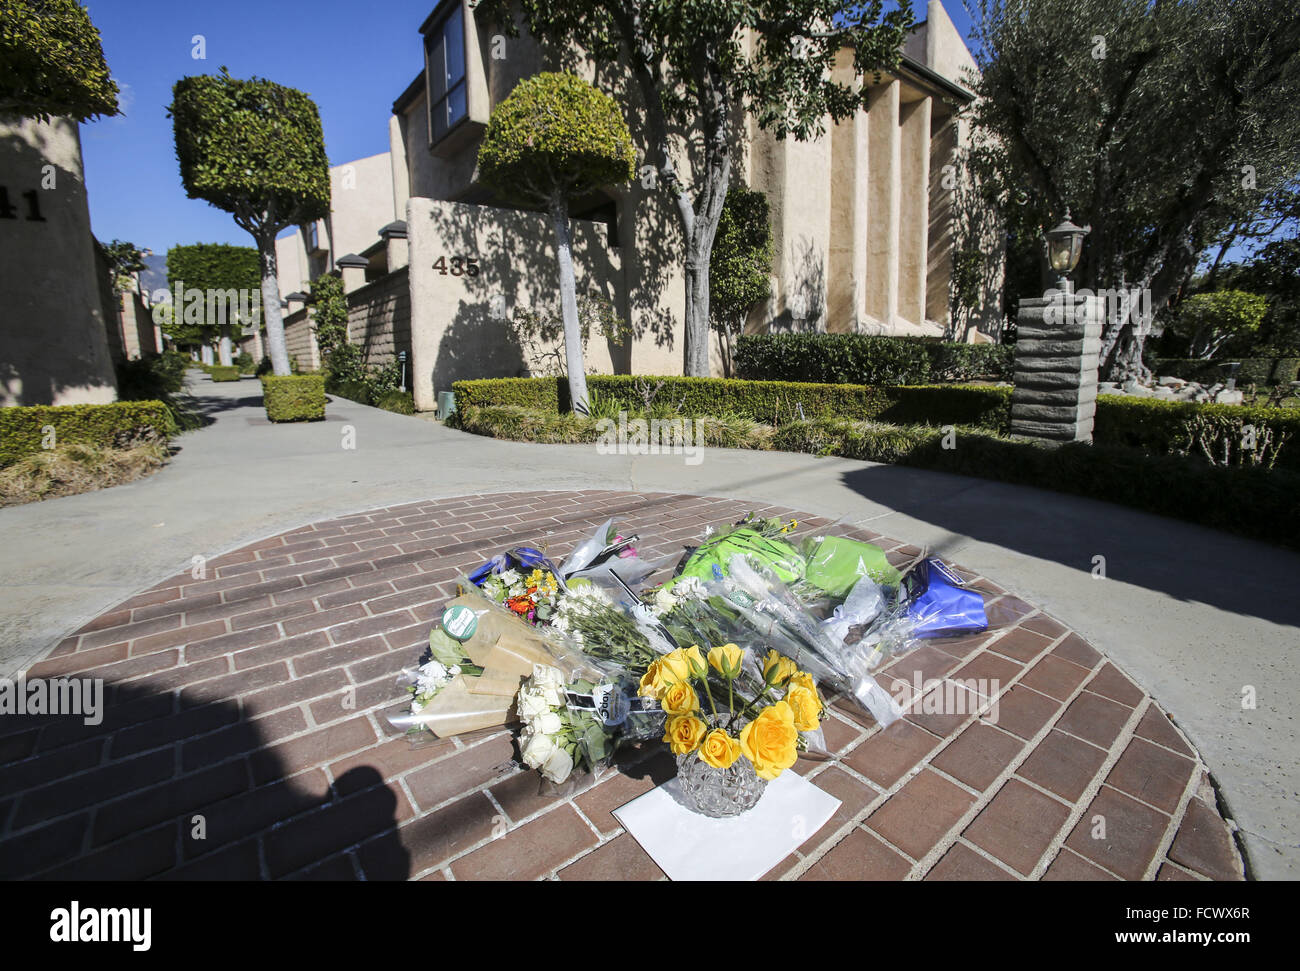 Los Angeles, California, USA. 25th Jan, 2016. Flowers are placed at a memorial outside the scene of two brothers - Stock Image